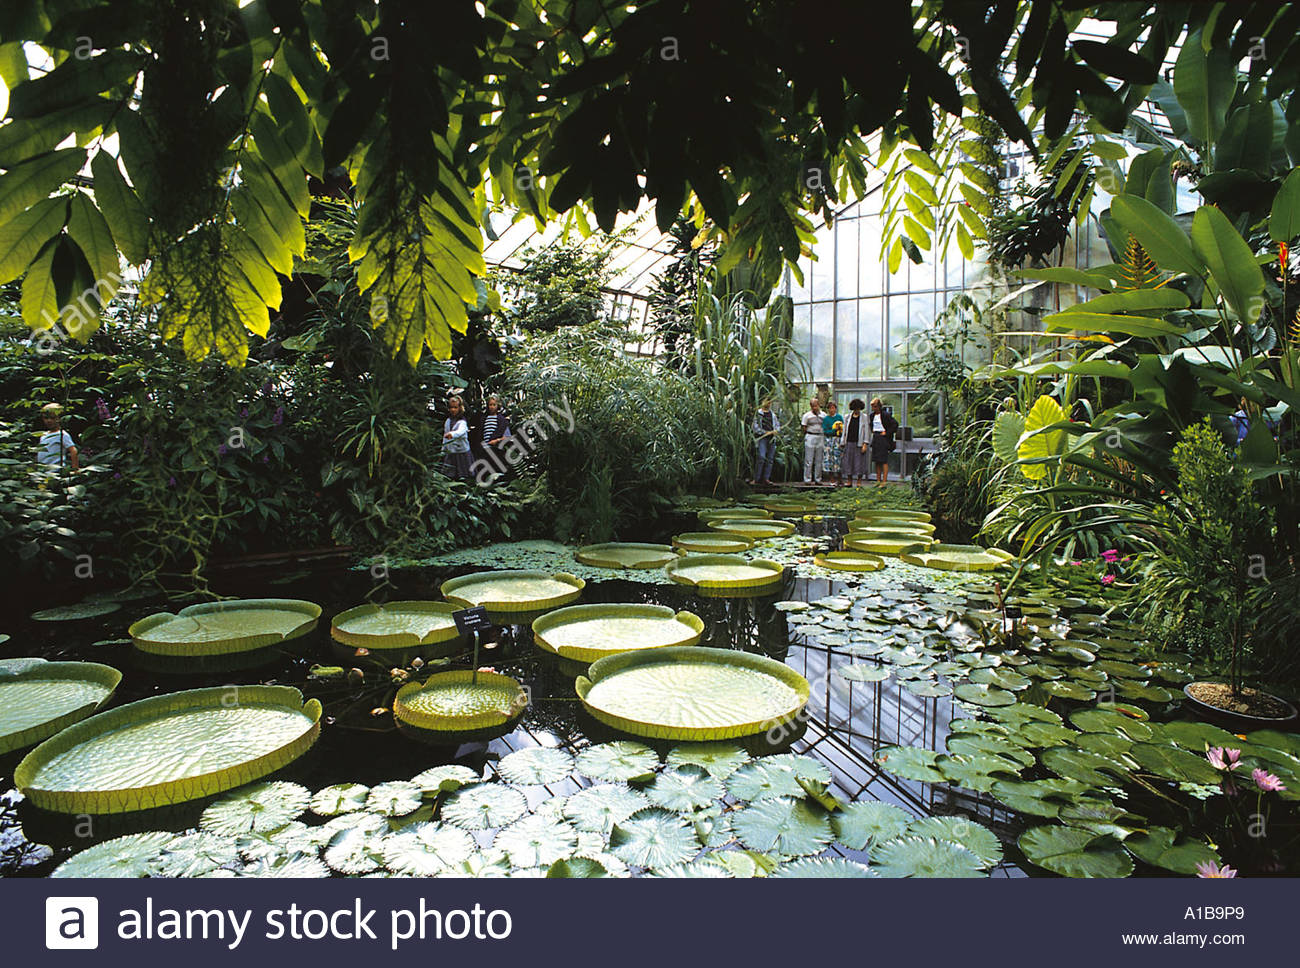 A POND INSIDE ONE OF THE GLASS HOUSES IN THE ROYAL BOTANIC GARDEN EDINBURGH - Stock Image